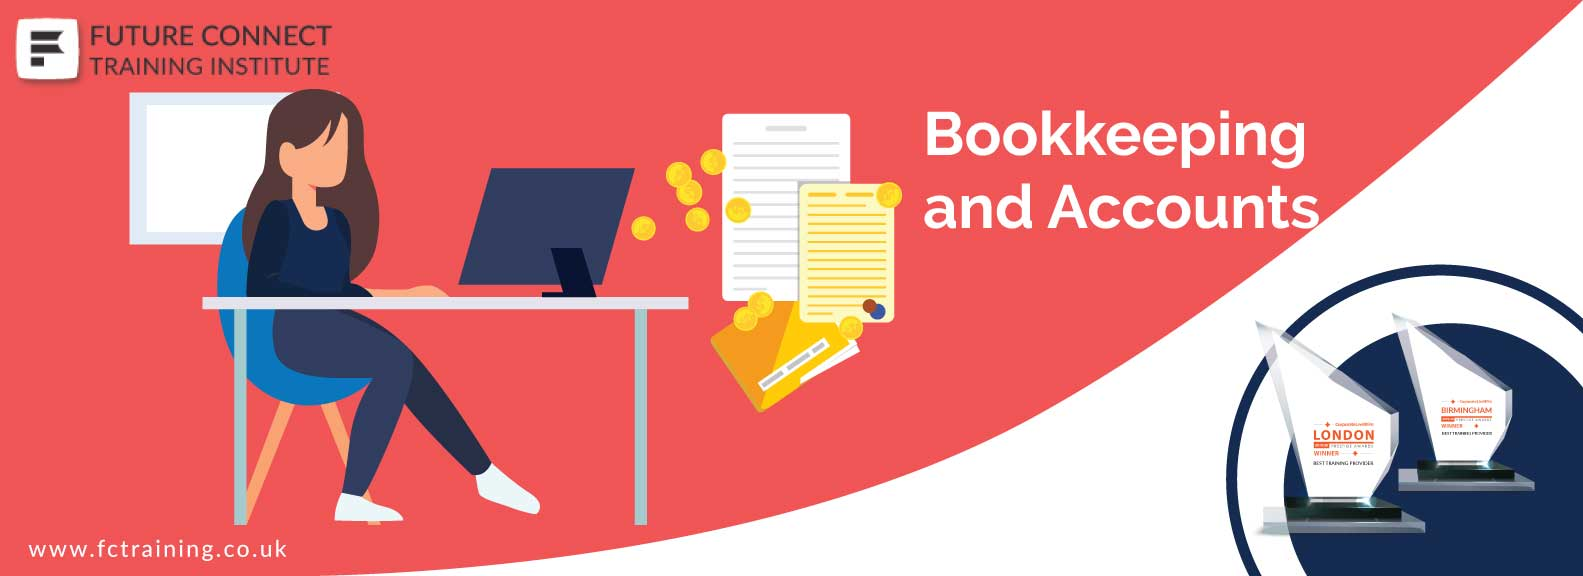 Bookkeeping and Accounts